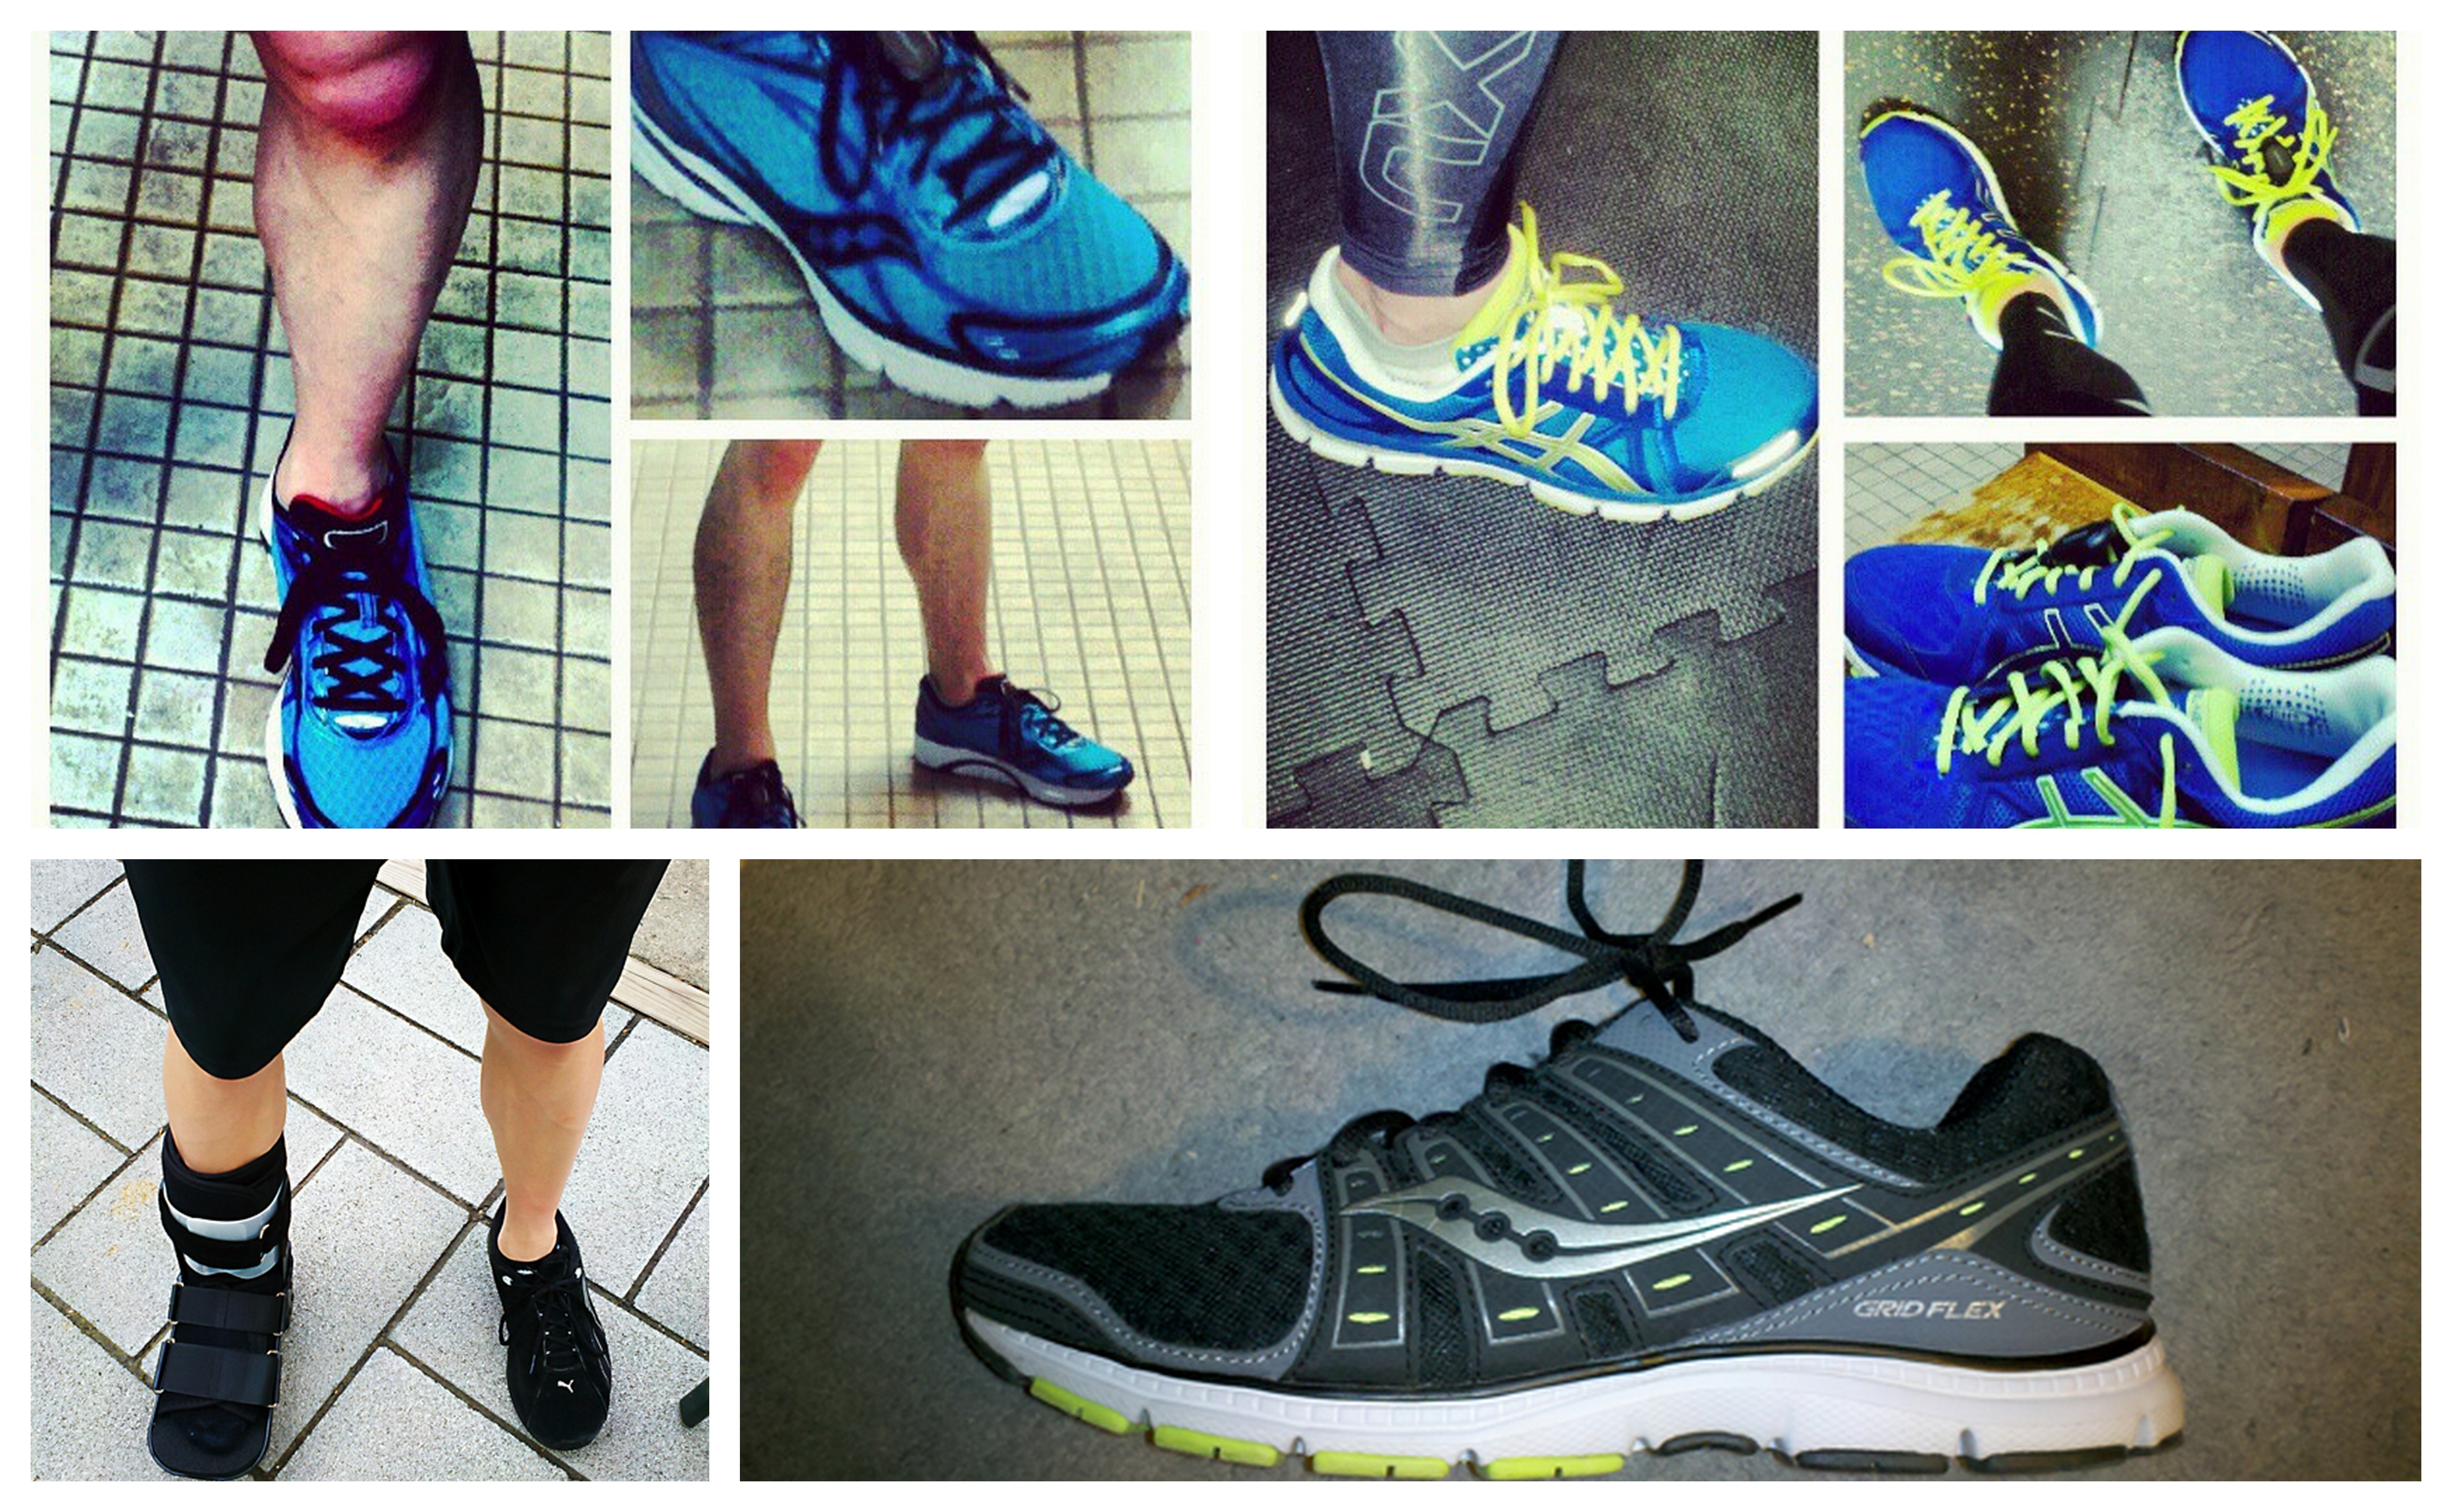 [Updated] I Have This Weird Ankle Thing Going On: The Search for Good Running Shoes